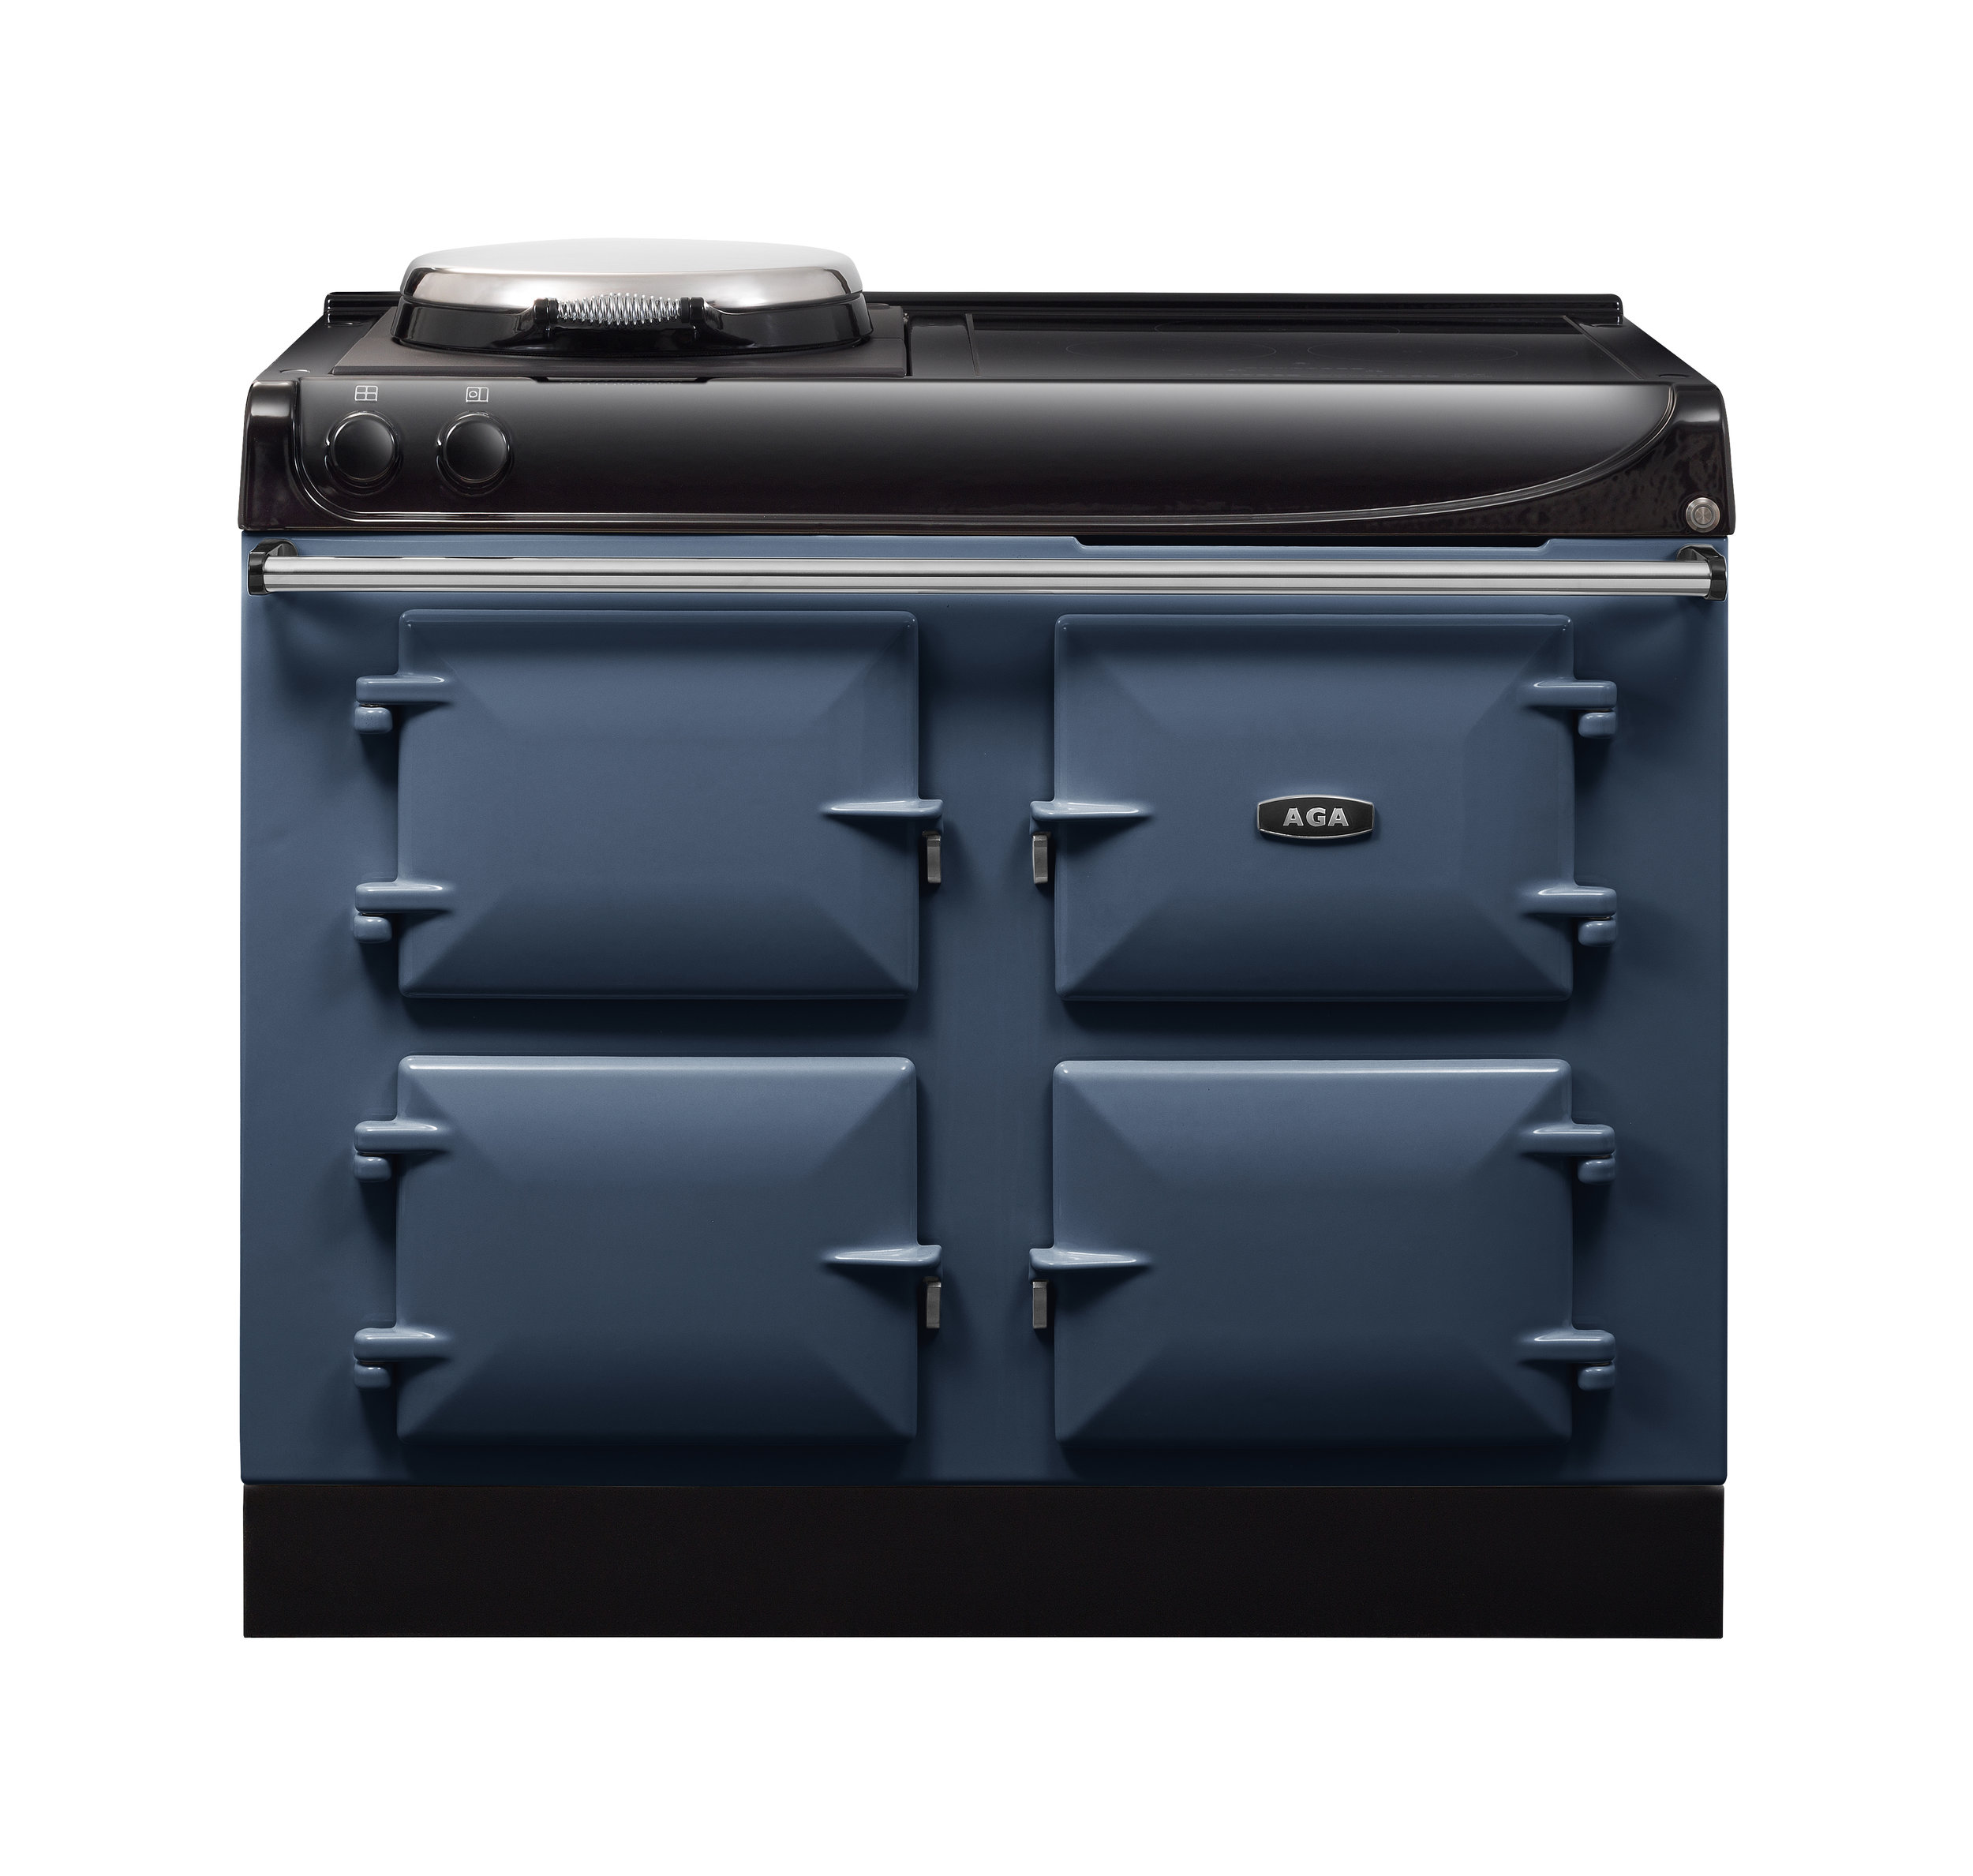 AGA 3 Series 110_Dartmouth Blue.jpg